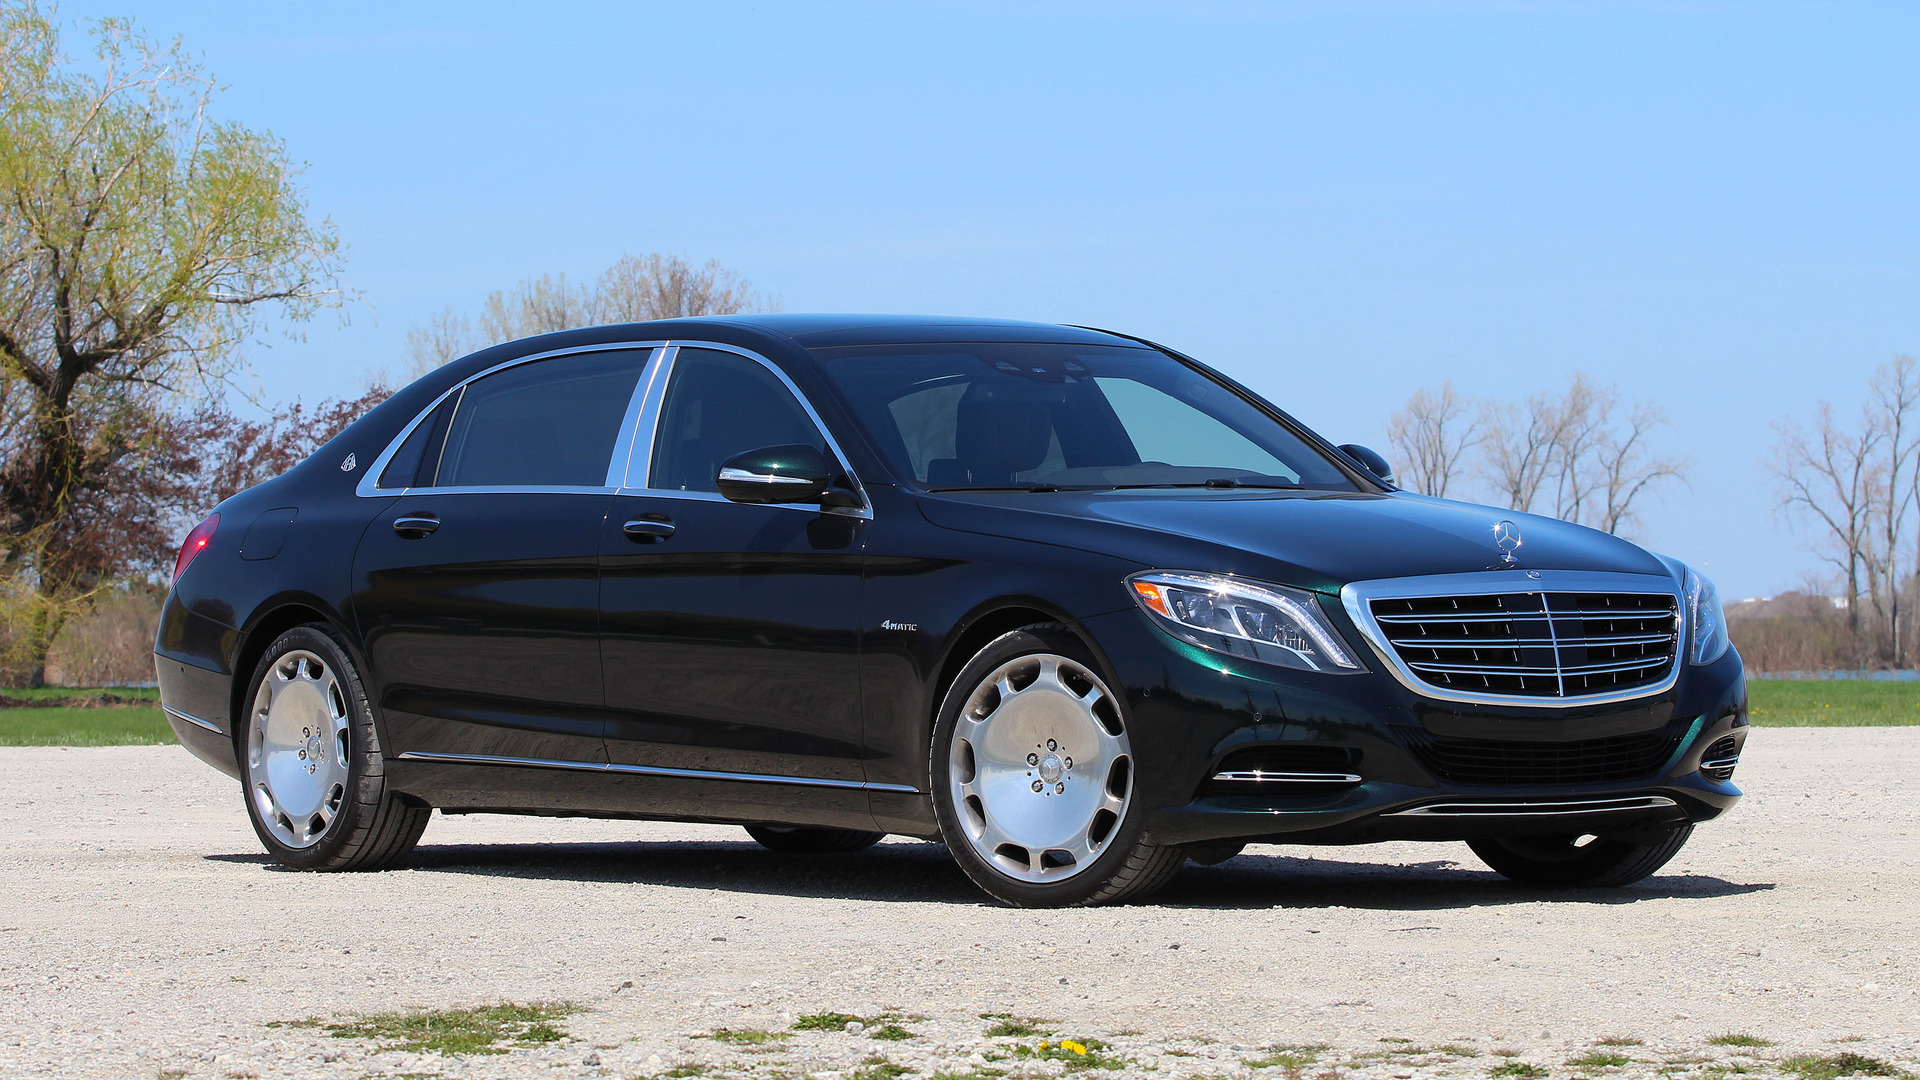 2017 Mercedes Benz S550 Sedan >> 2017 Mercedes-Maybach S550 Review: Less Is More